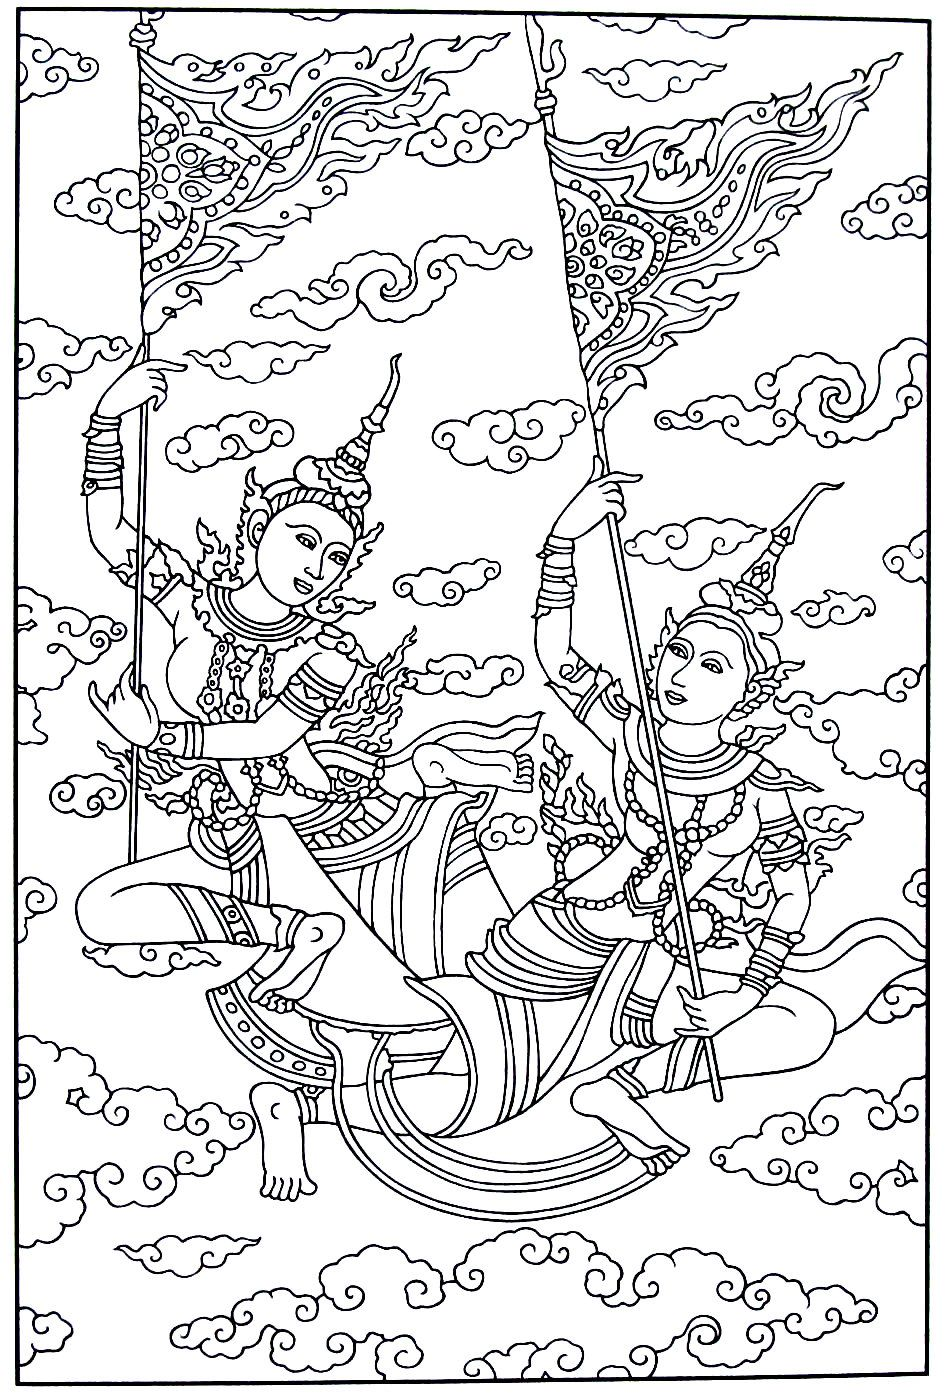 Detail Of A Painting Of Phra Malai India And Thailand Culture Coloring Book Pages Designs Coloring Books Coloring Book Pages Coloring Books